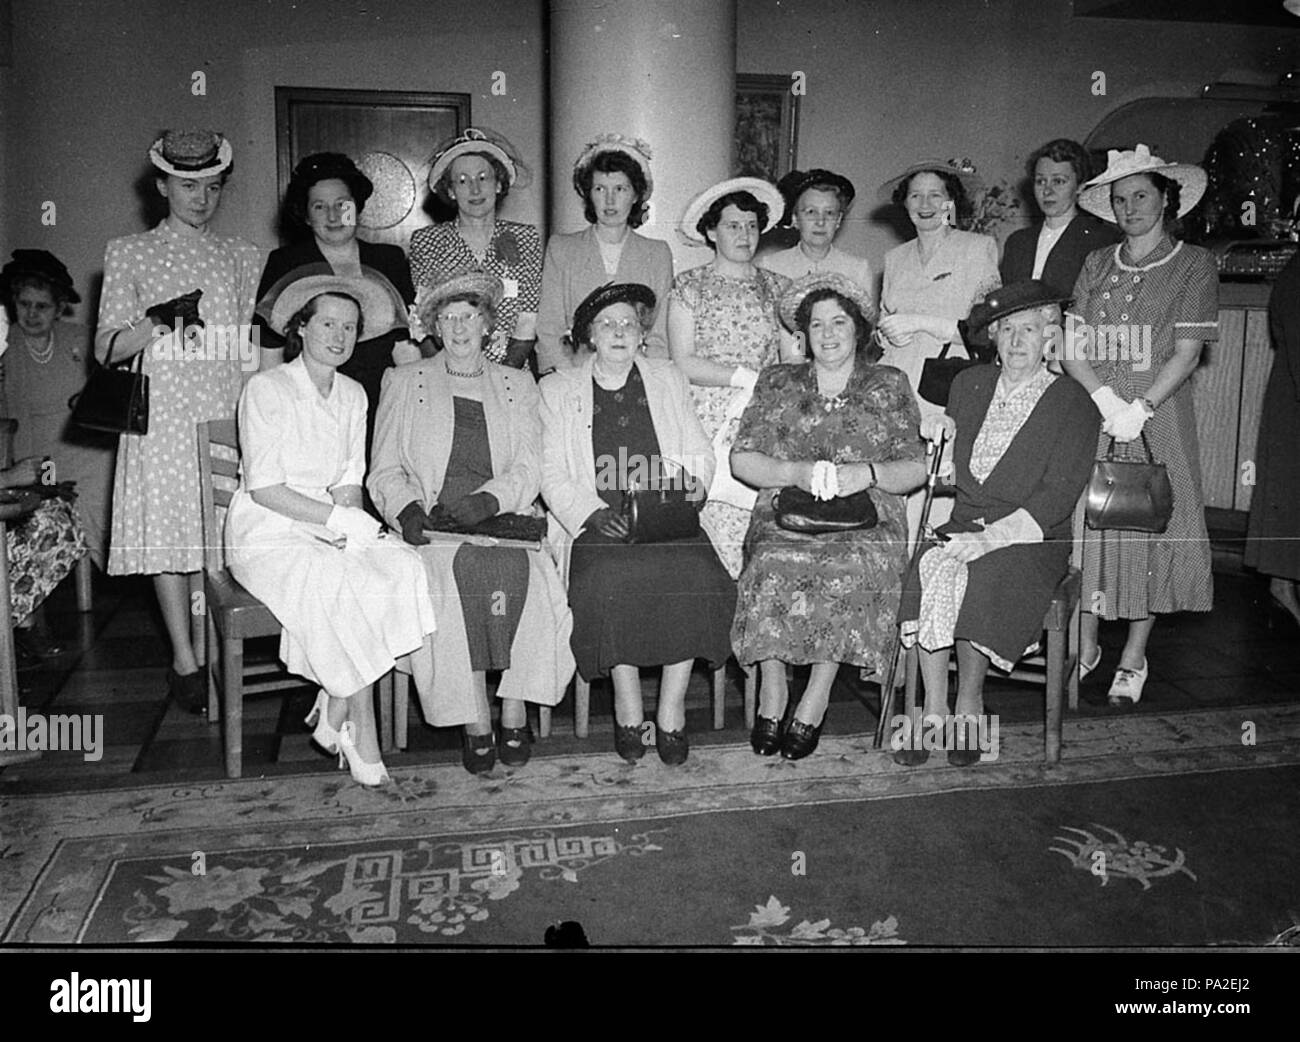 262 SLNSW 36743 Associated Bread Manufacturing Conference ladies morning tea at Cahills - Stock Image